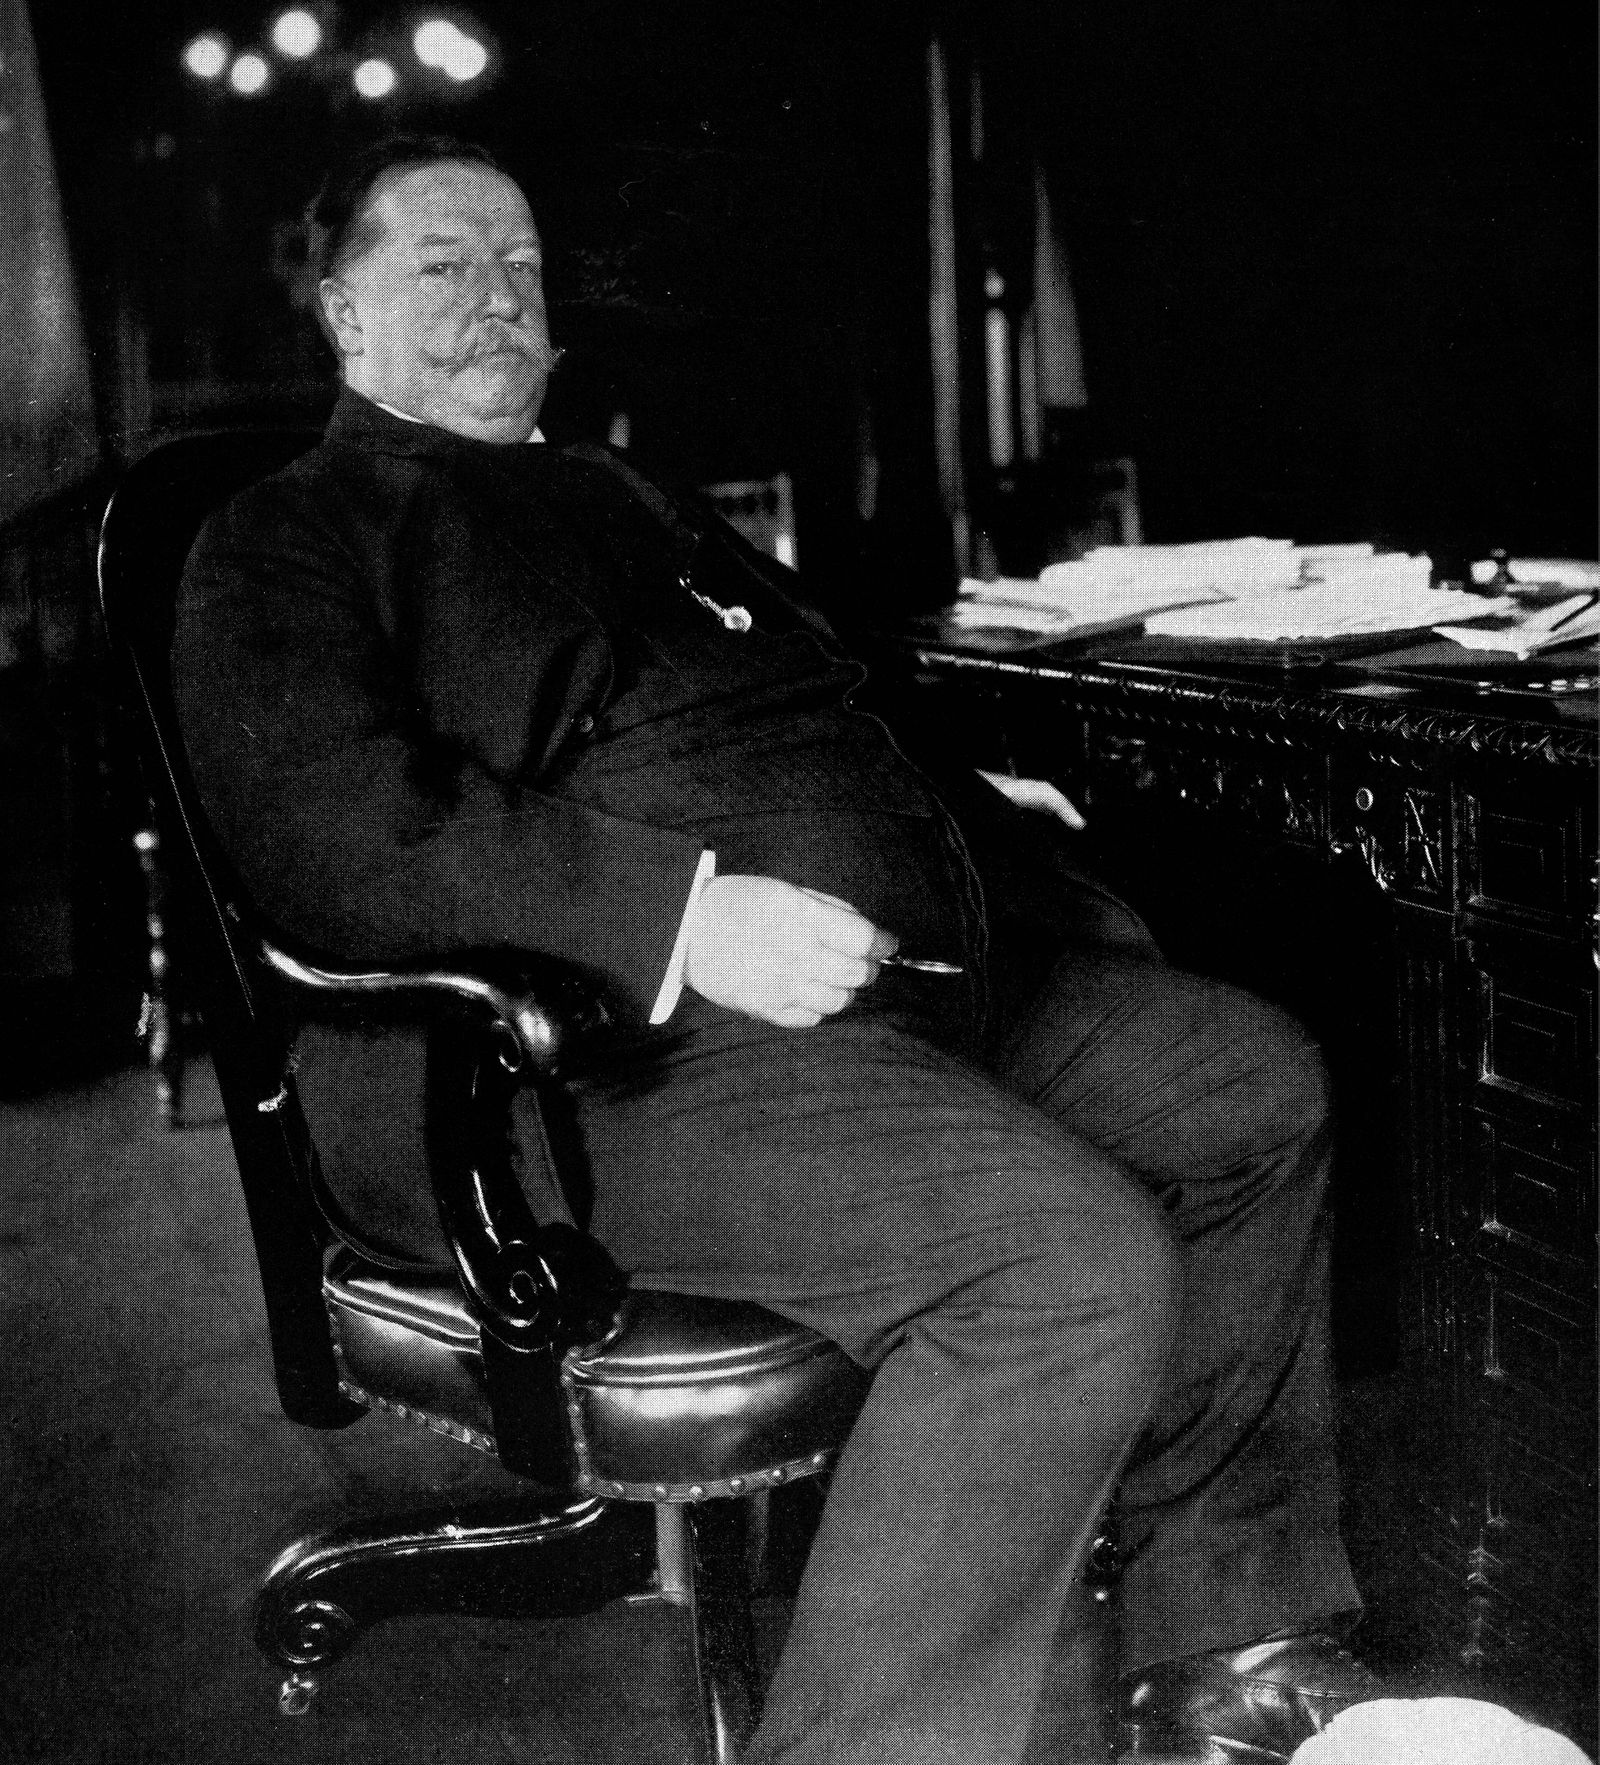 Photograph of William Howard Taft 1857 1930 27th President of the United States and later Chief Ju